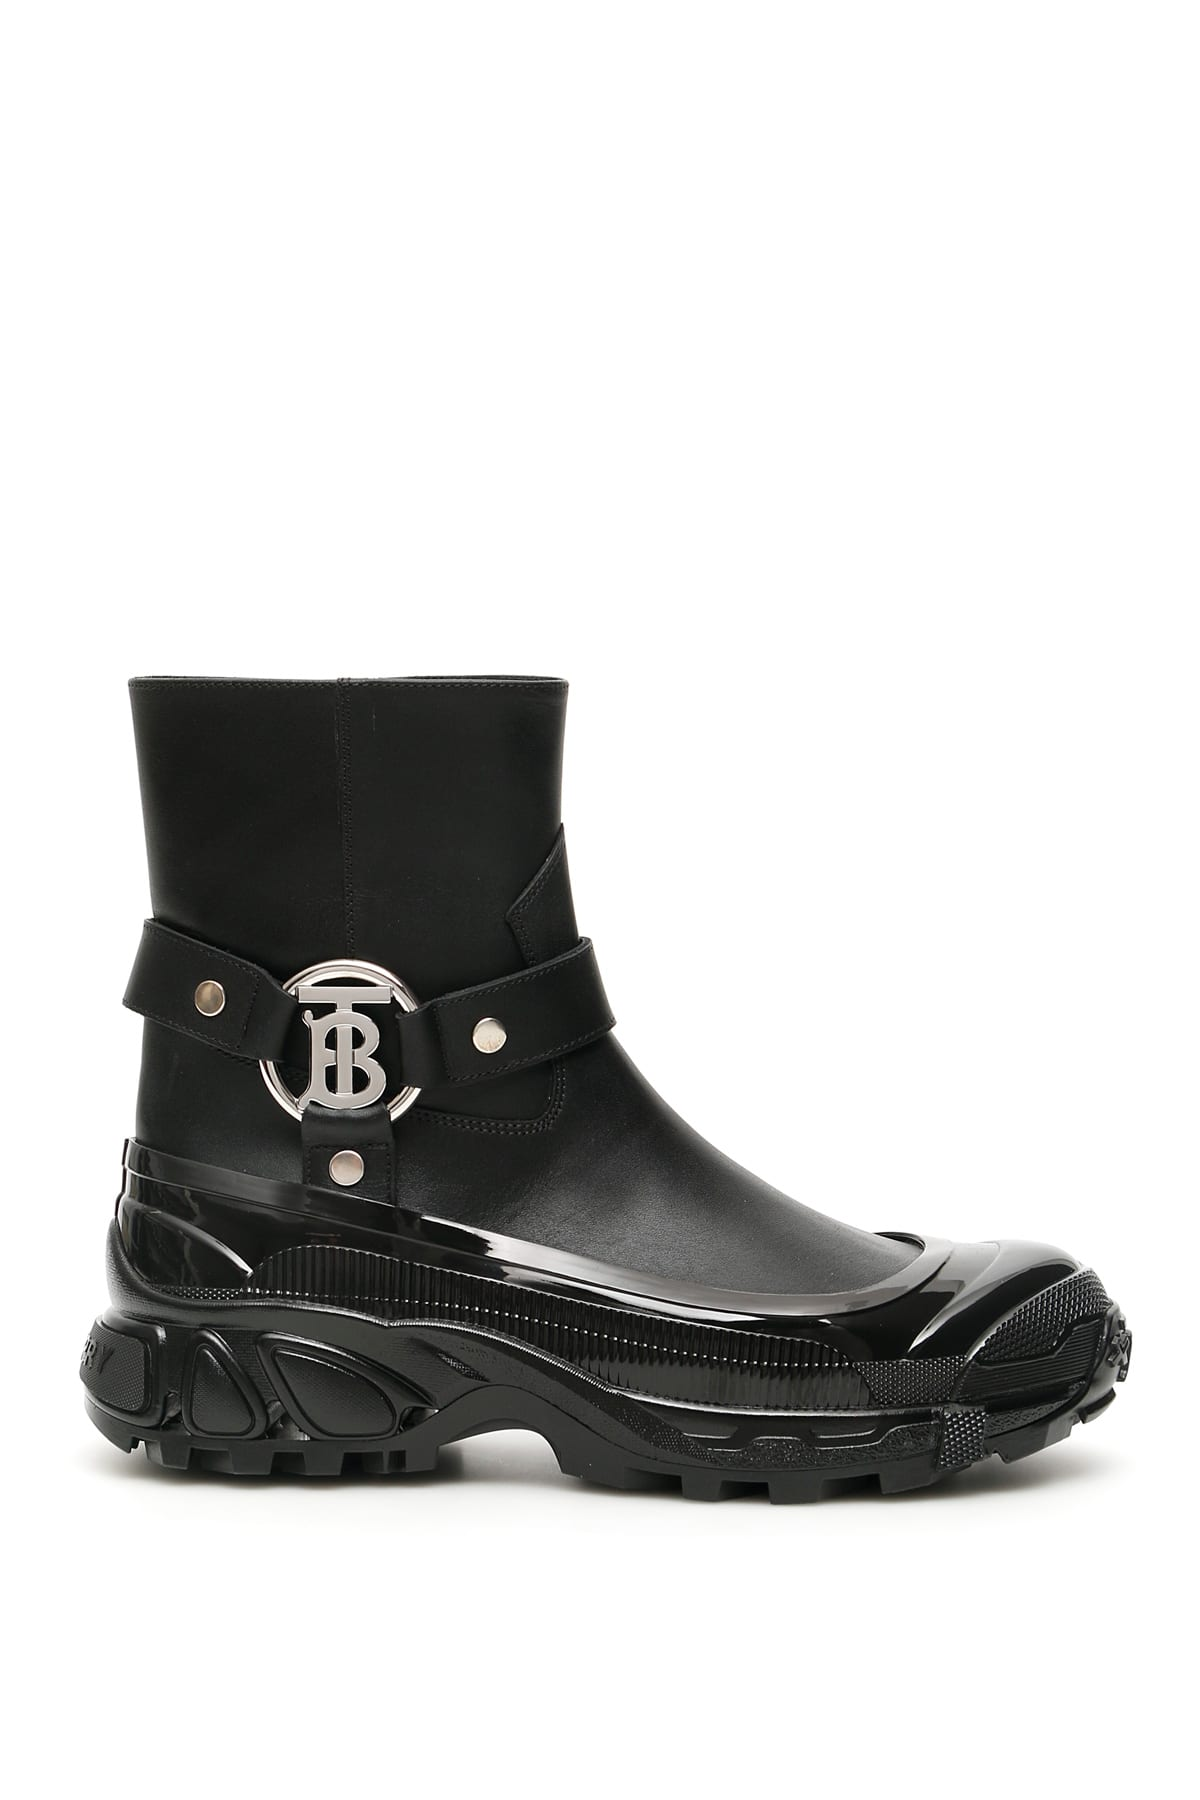 Burberry MALLORY TB BOOTS